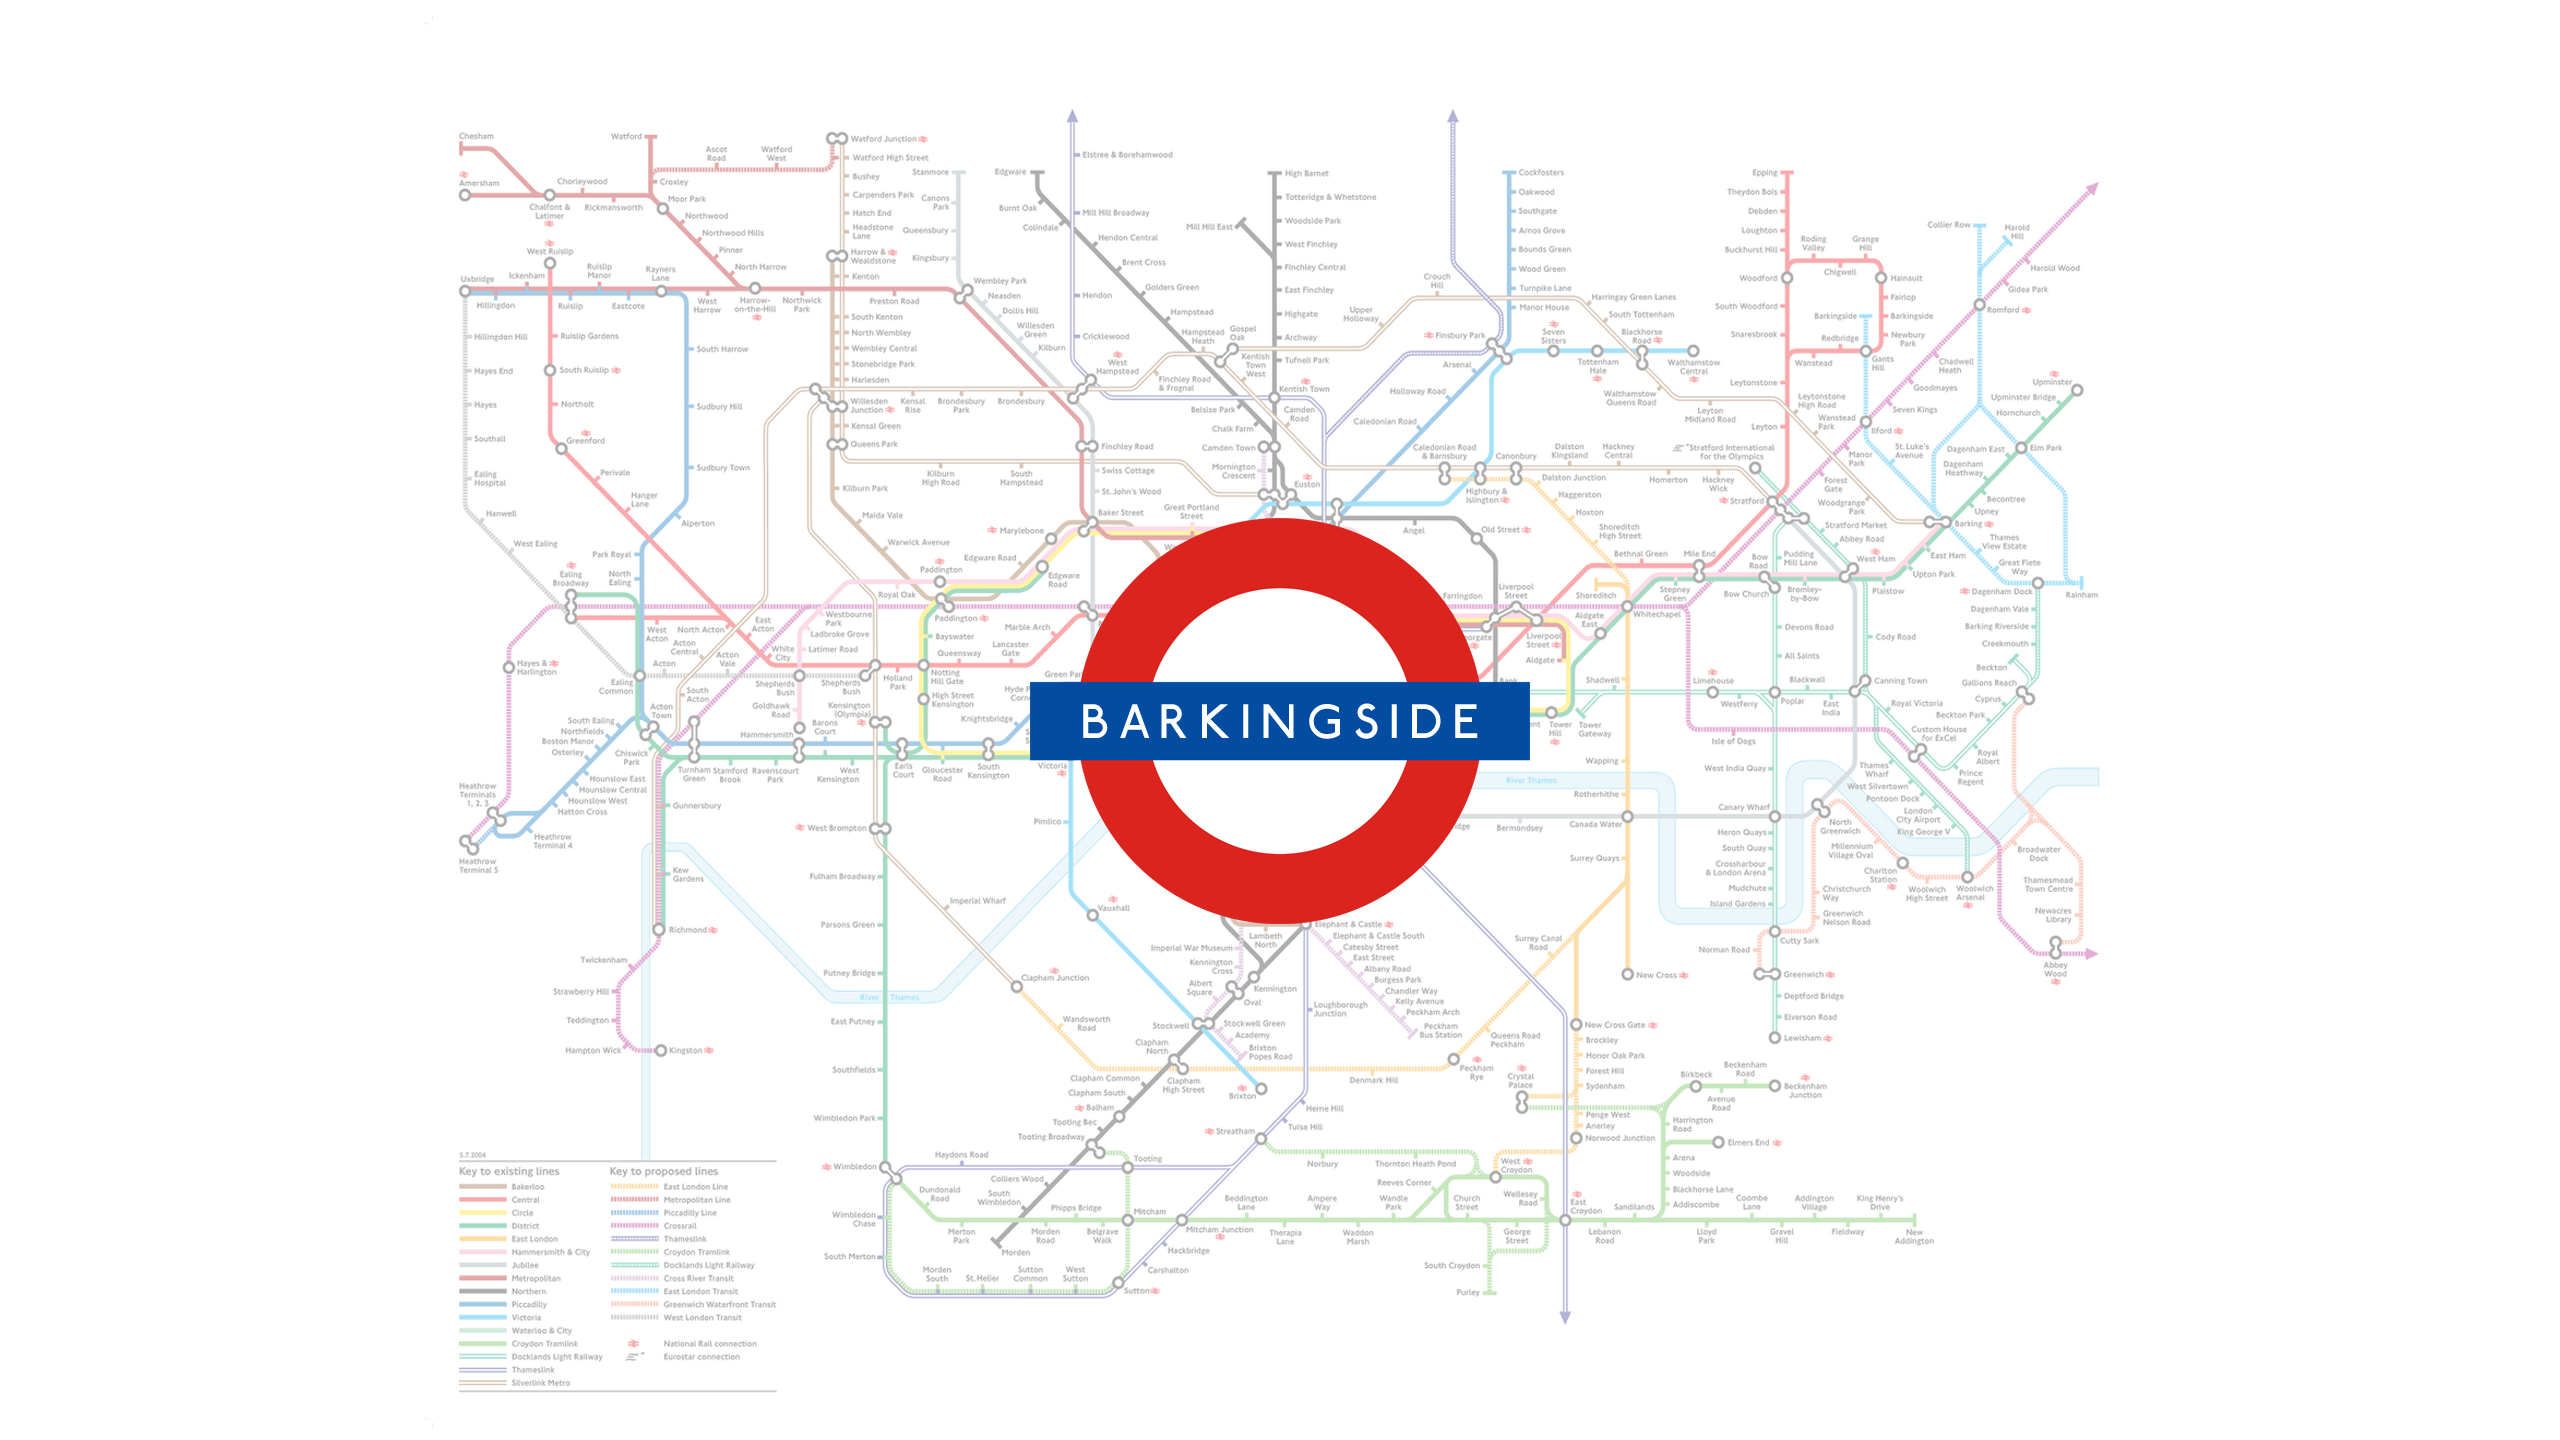 Barkingside (Map)